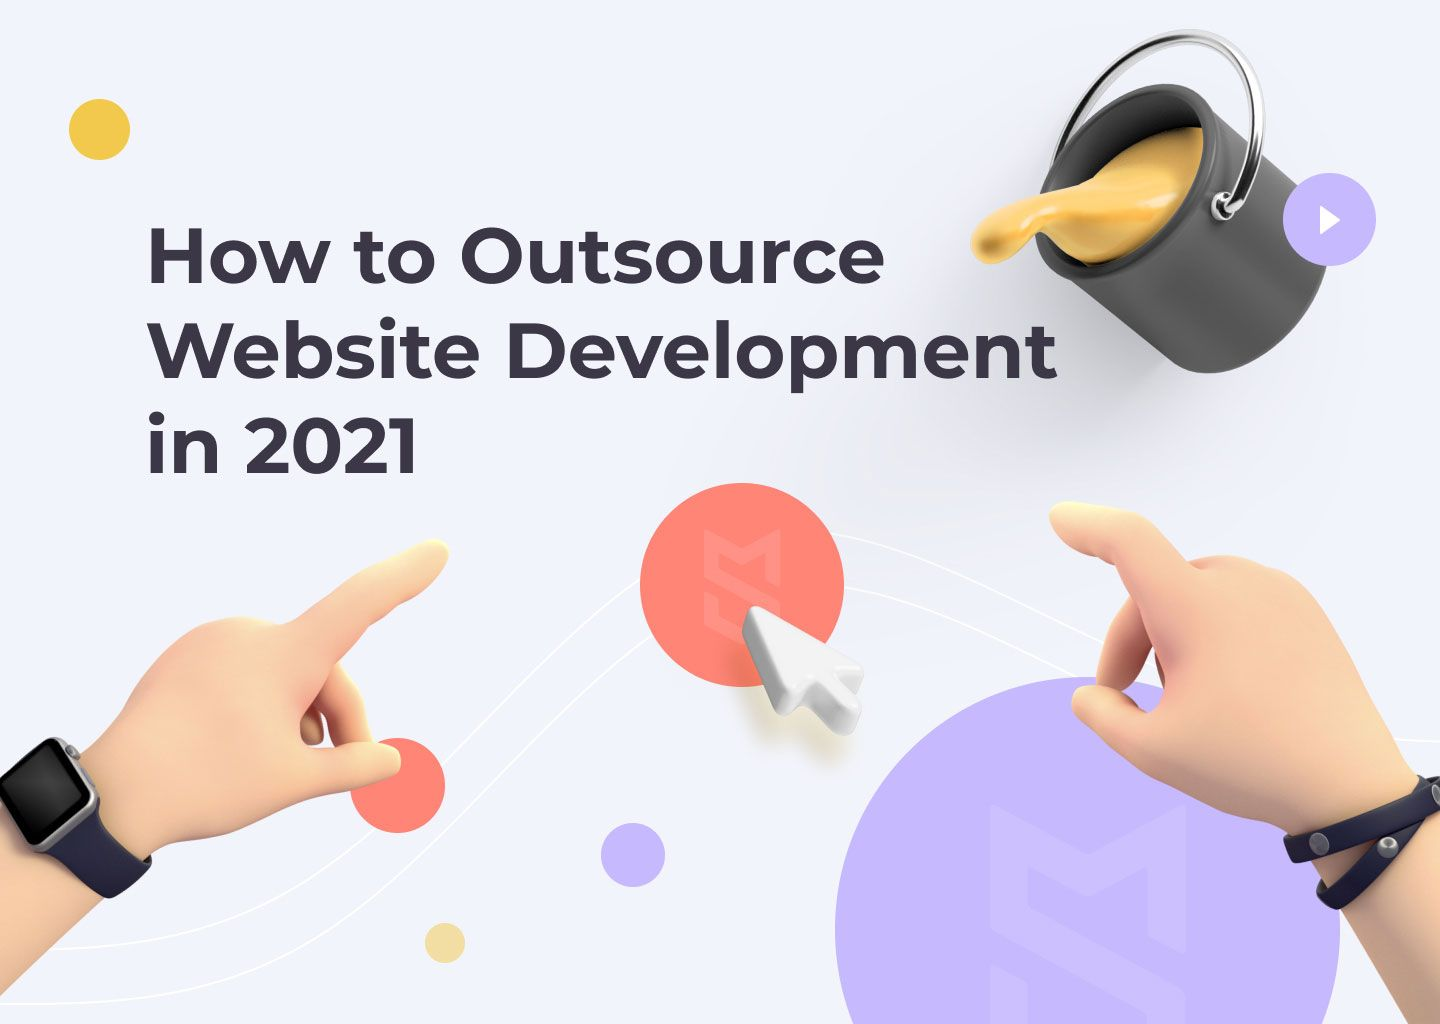 How to Outsource Website Development in 2021